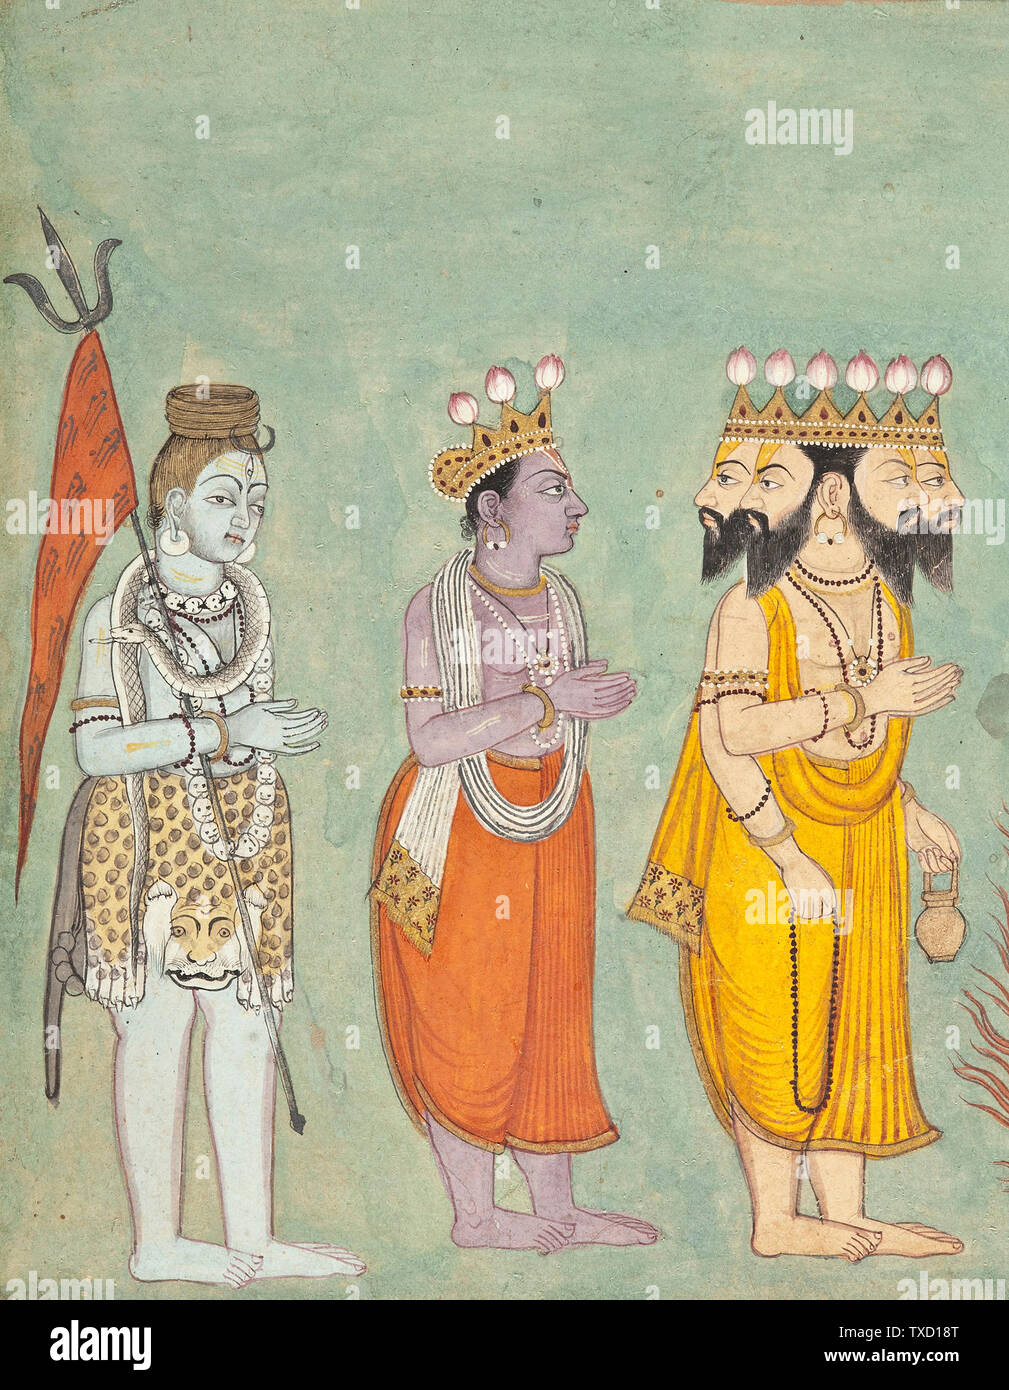 'Shiva, Vishnu, and Brahma Adoring Kali (image 2 of 7); English:  India, Himachal Pradesh, Basohli, circa 1740 Drawings; watercolors Opaque watercolor, gold, silver, and ink on paper Purchased with funds provided by Dorothy and Richard Sherwood and Indian Art Special Purpose Fund (M.80.101) South and Southeast Asian Art; circa 1740 date QS:P571,+1740-00-00T00:00:00Z/9,P1480,Q5727902; ' - Stock Image